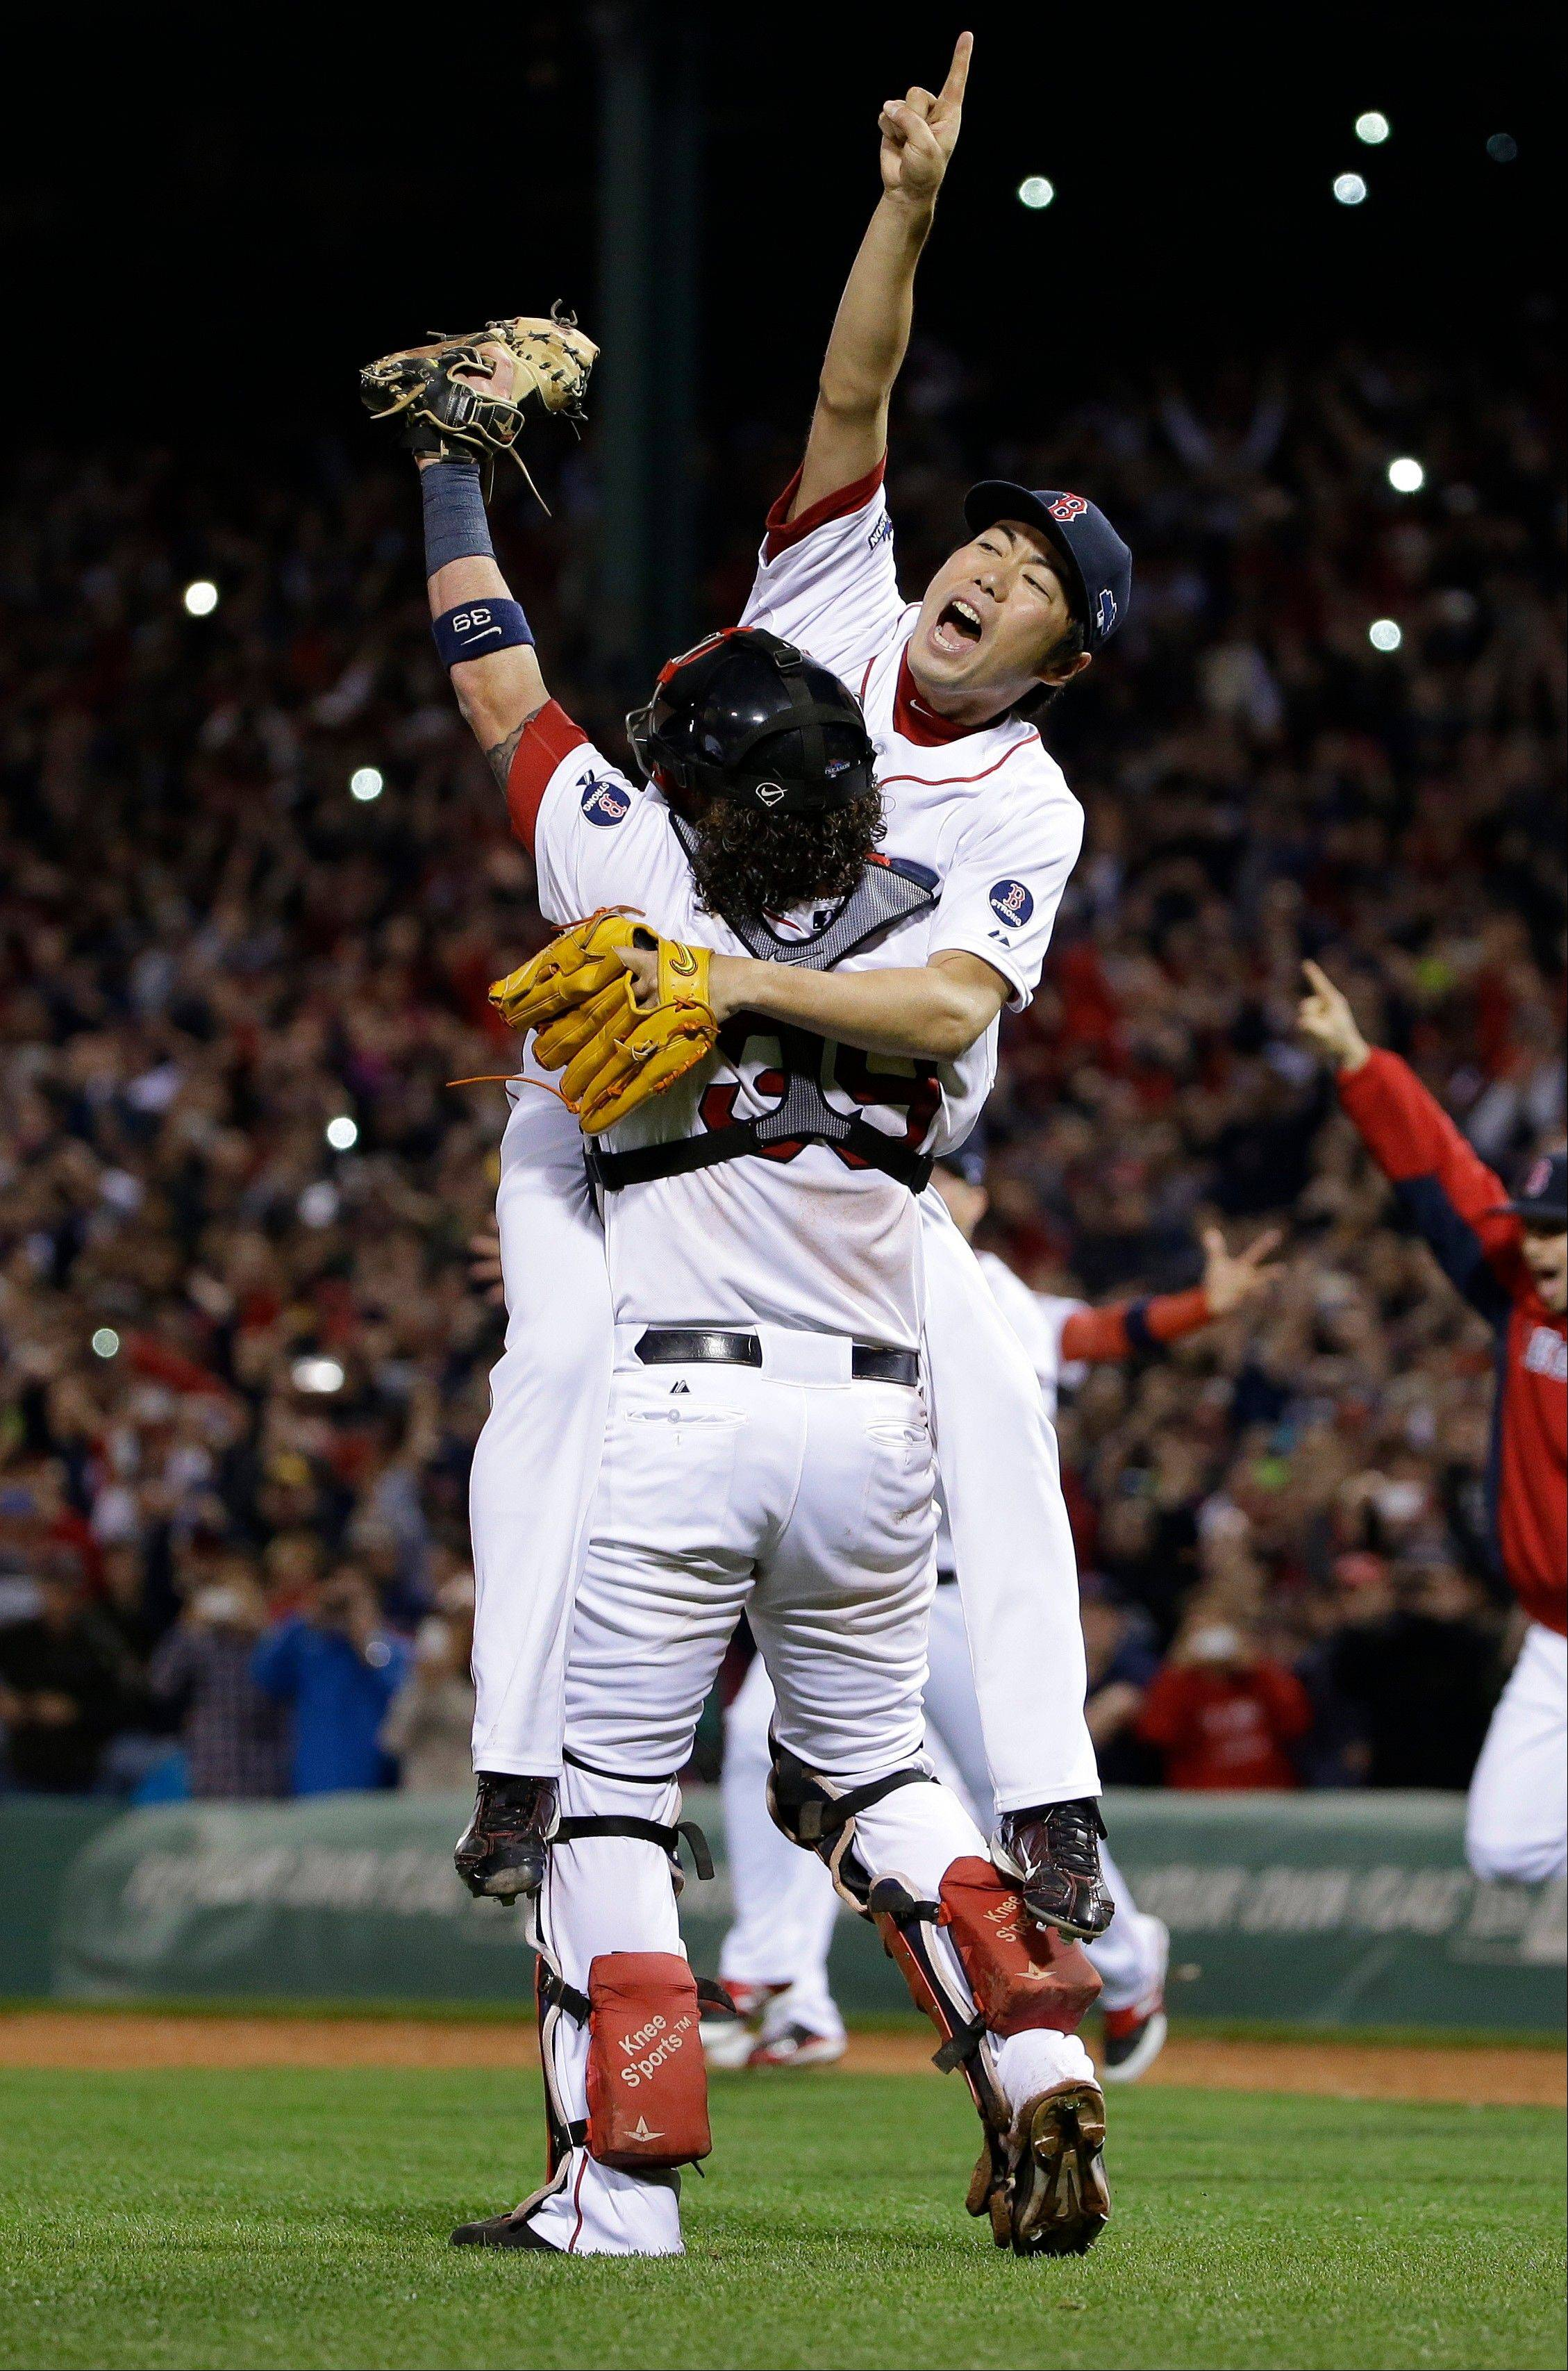 Boston Red Sox relief pitcher Koji Uehara, rear, and catcher Jarrod Saltalamacchia celebrate the Red Sox' 5-2 win over the Detroit Tigers in Game 6 of the American League baseball championship series.